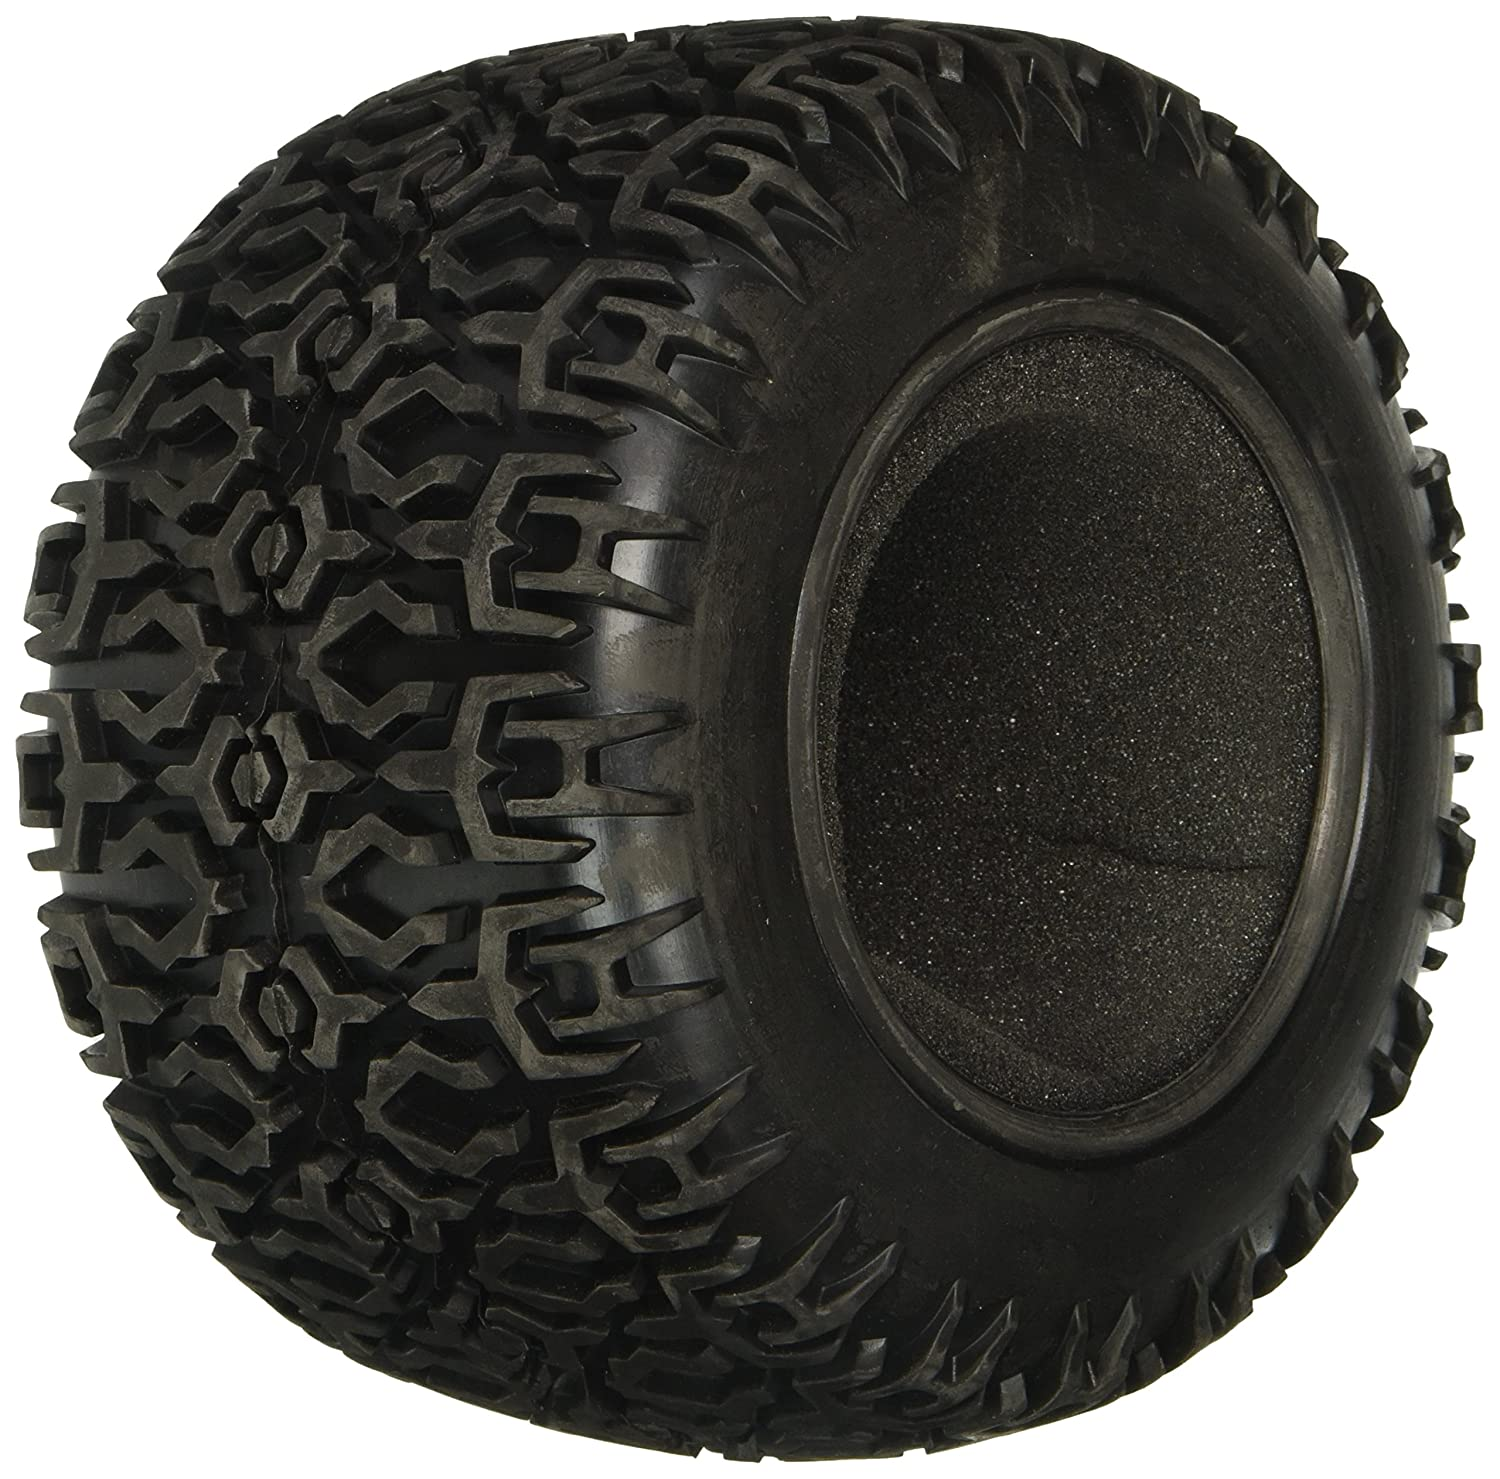 420 ATX Tires with Foam (2): (2): (2): LST2, XXL/2 by Team Losi 92b5a1